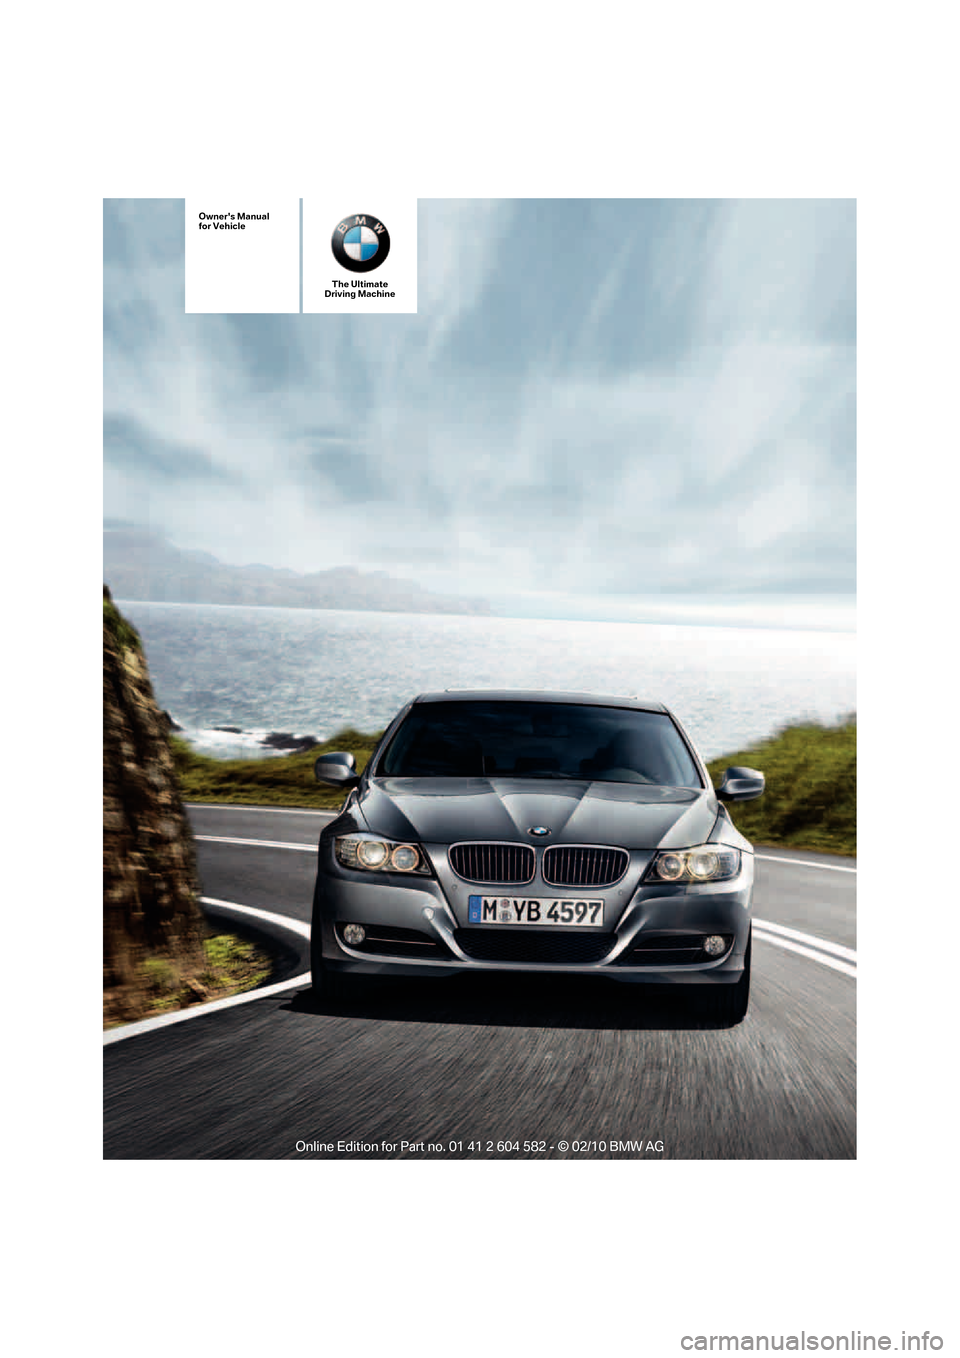 BMW 323I TOURING 2011 E91 Owners Manual, Page 1